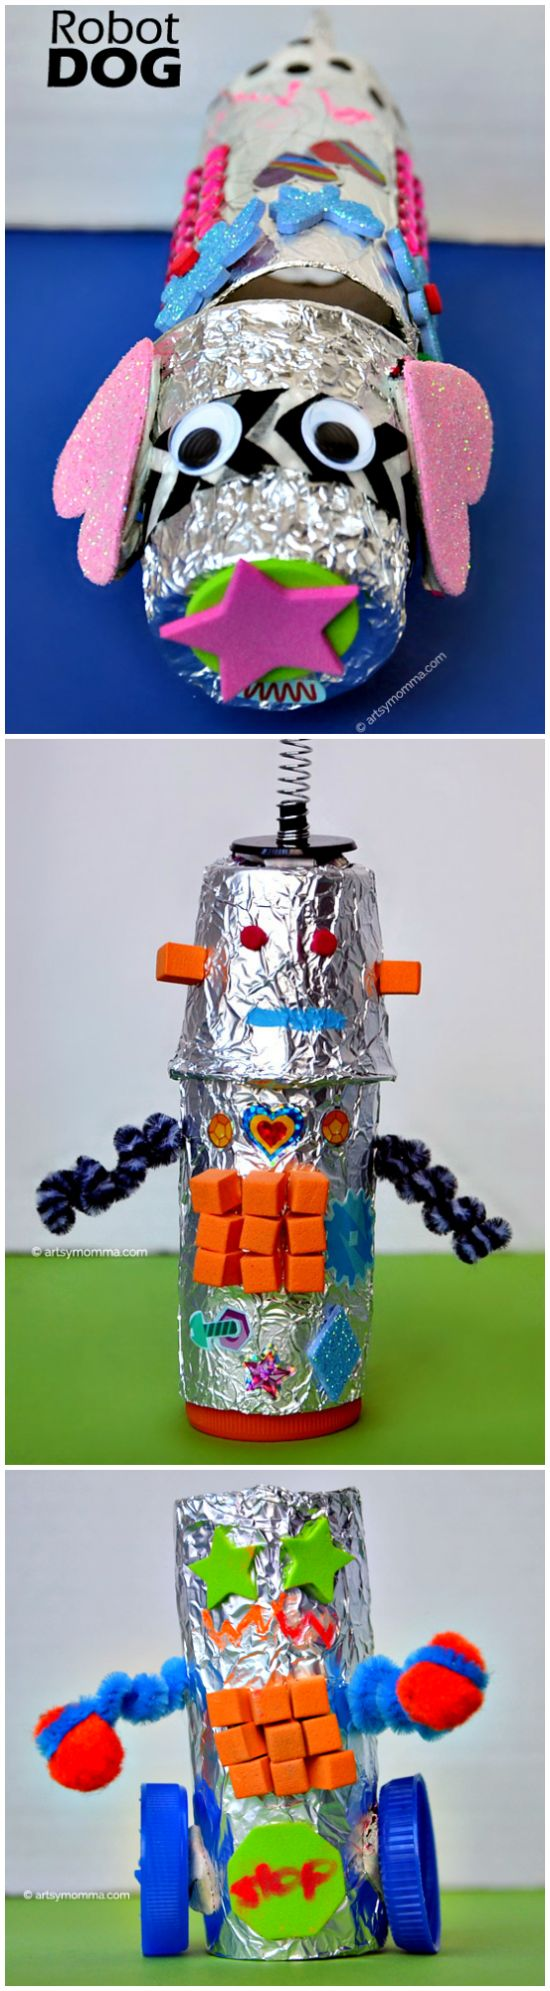 Recycled Robots made from Tin Foil and Cardboard Tubes + a Robot Dog Craft